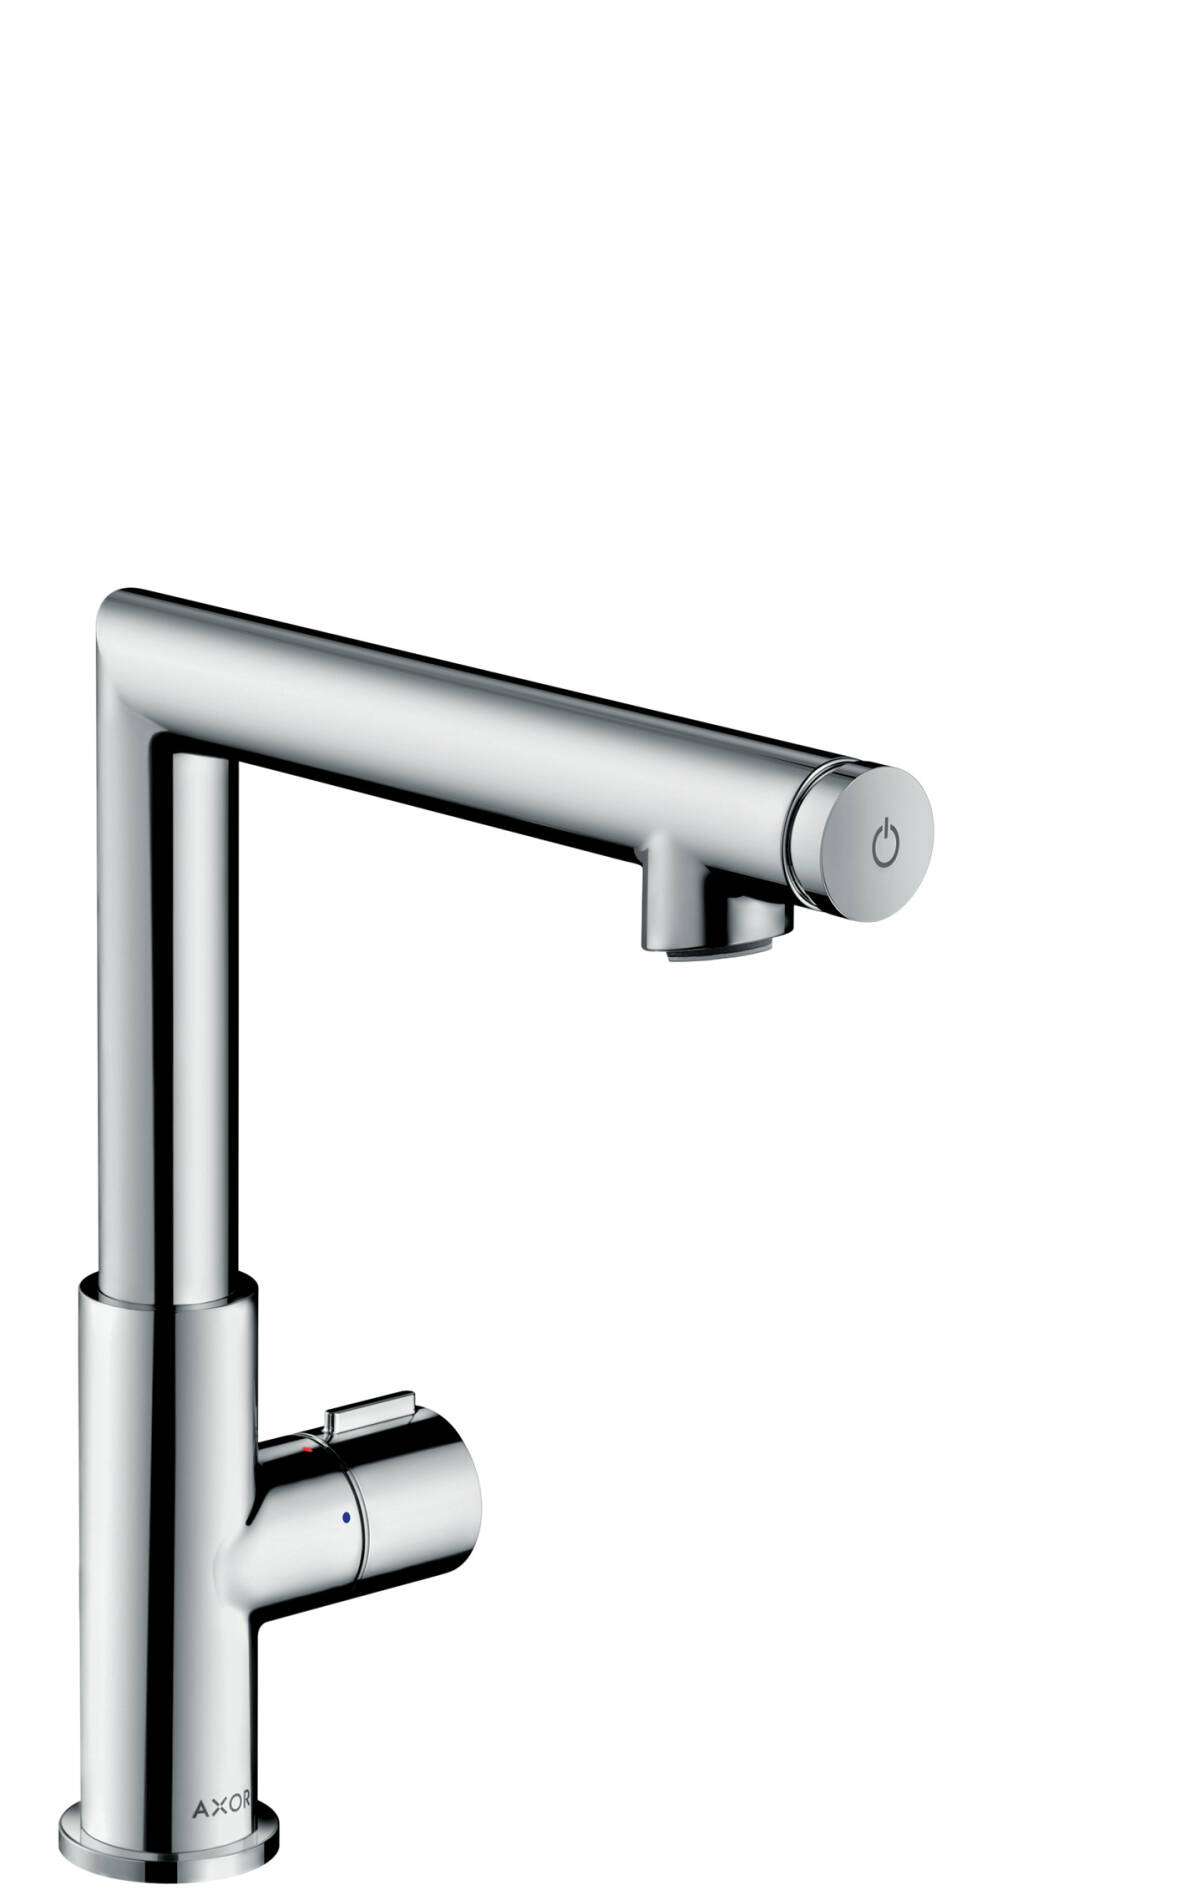 Basin mixer Select 220 with pop-up waste set, Chrome, 45016000